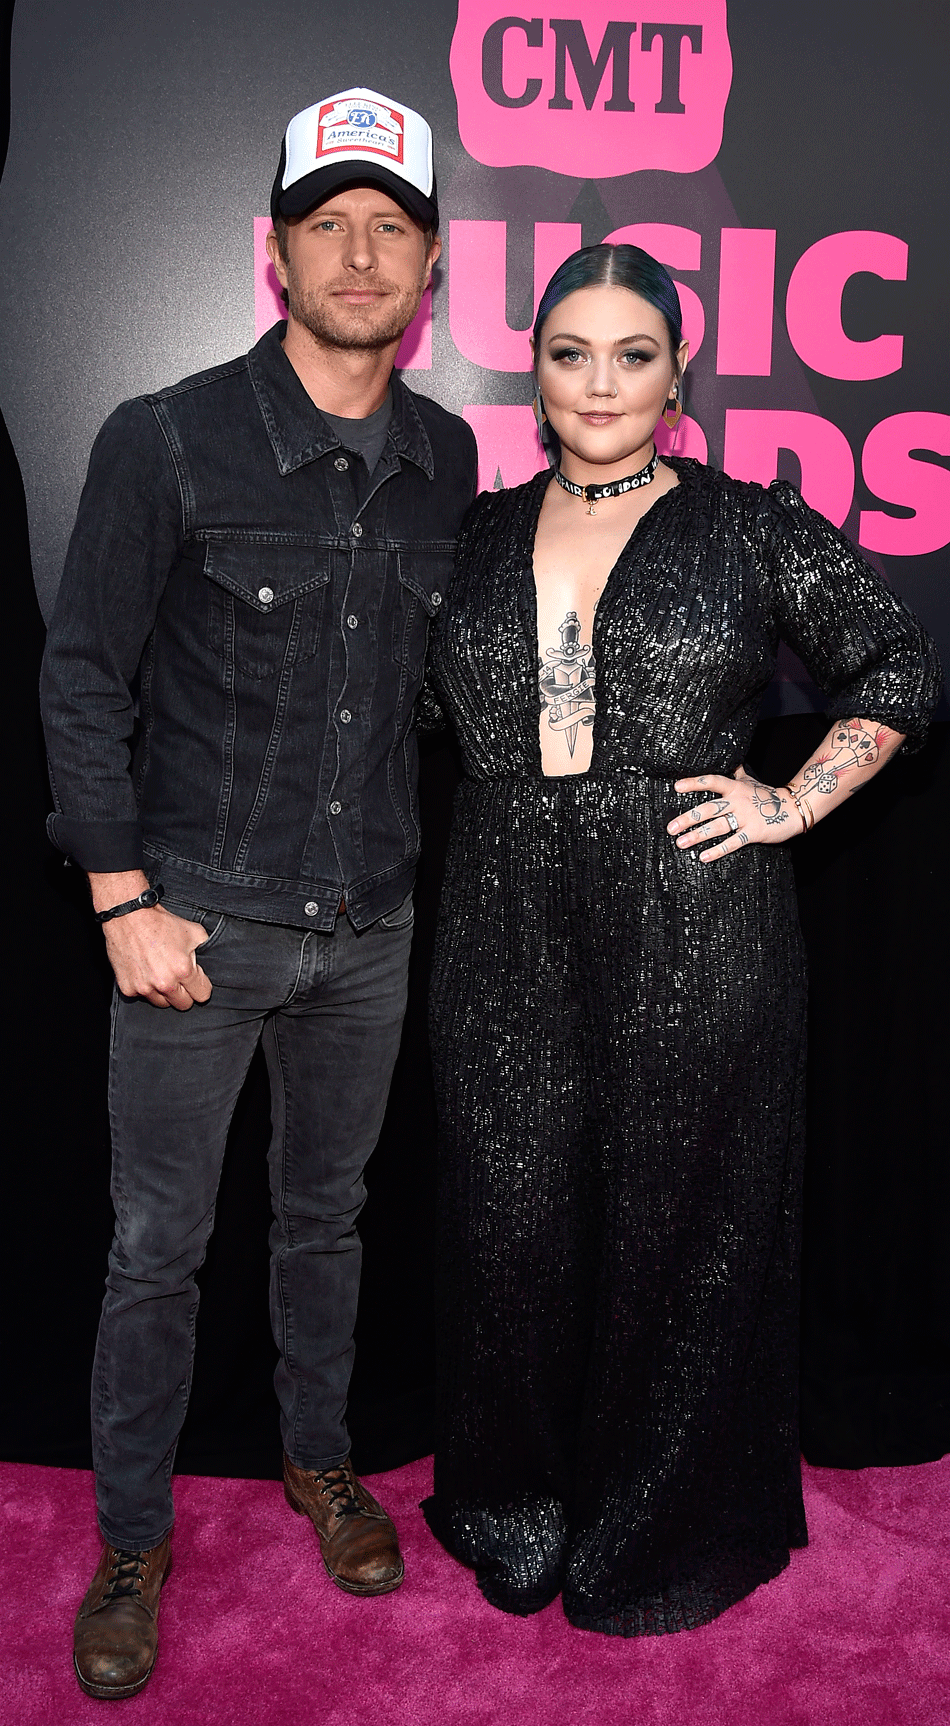 Dierks Bentley and Elle King